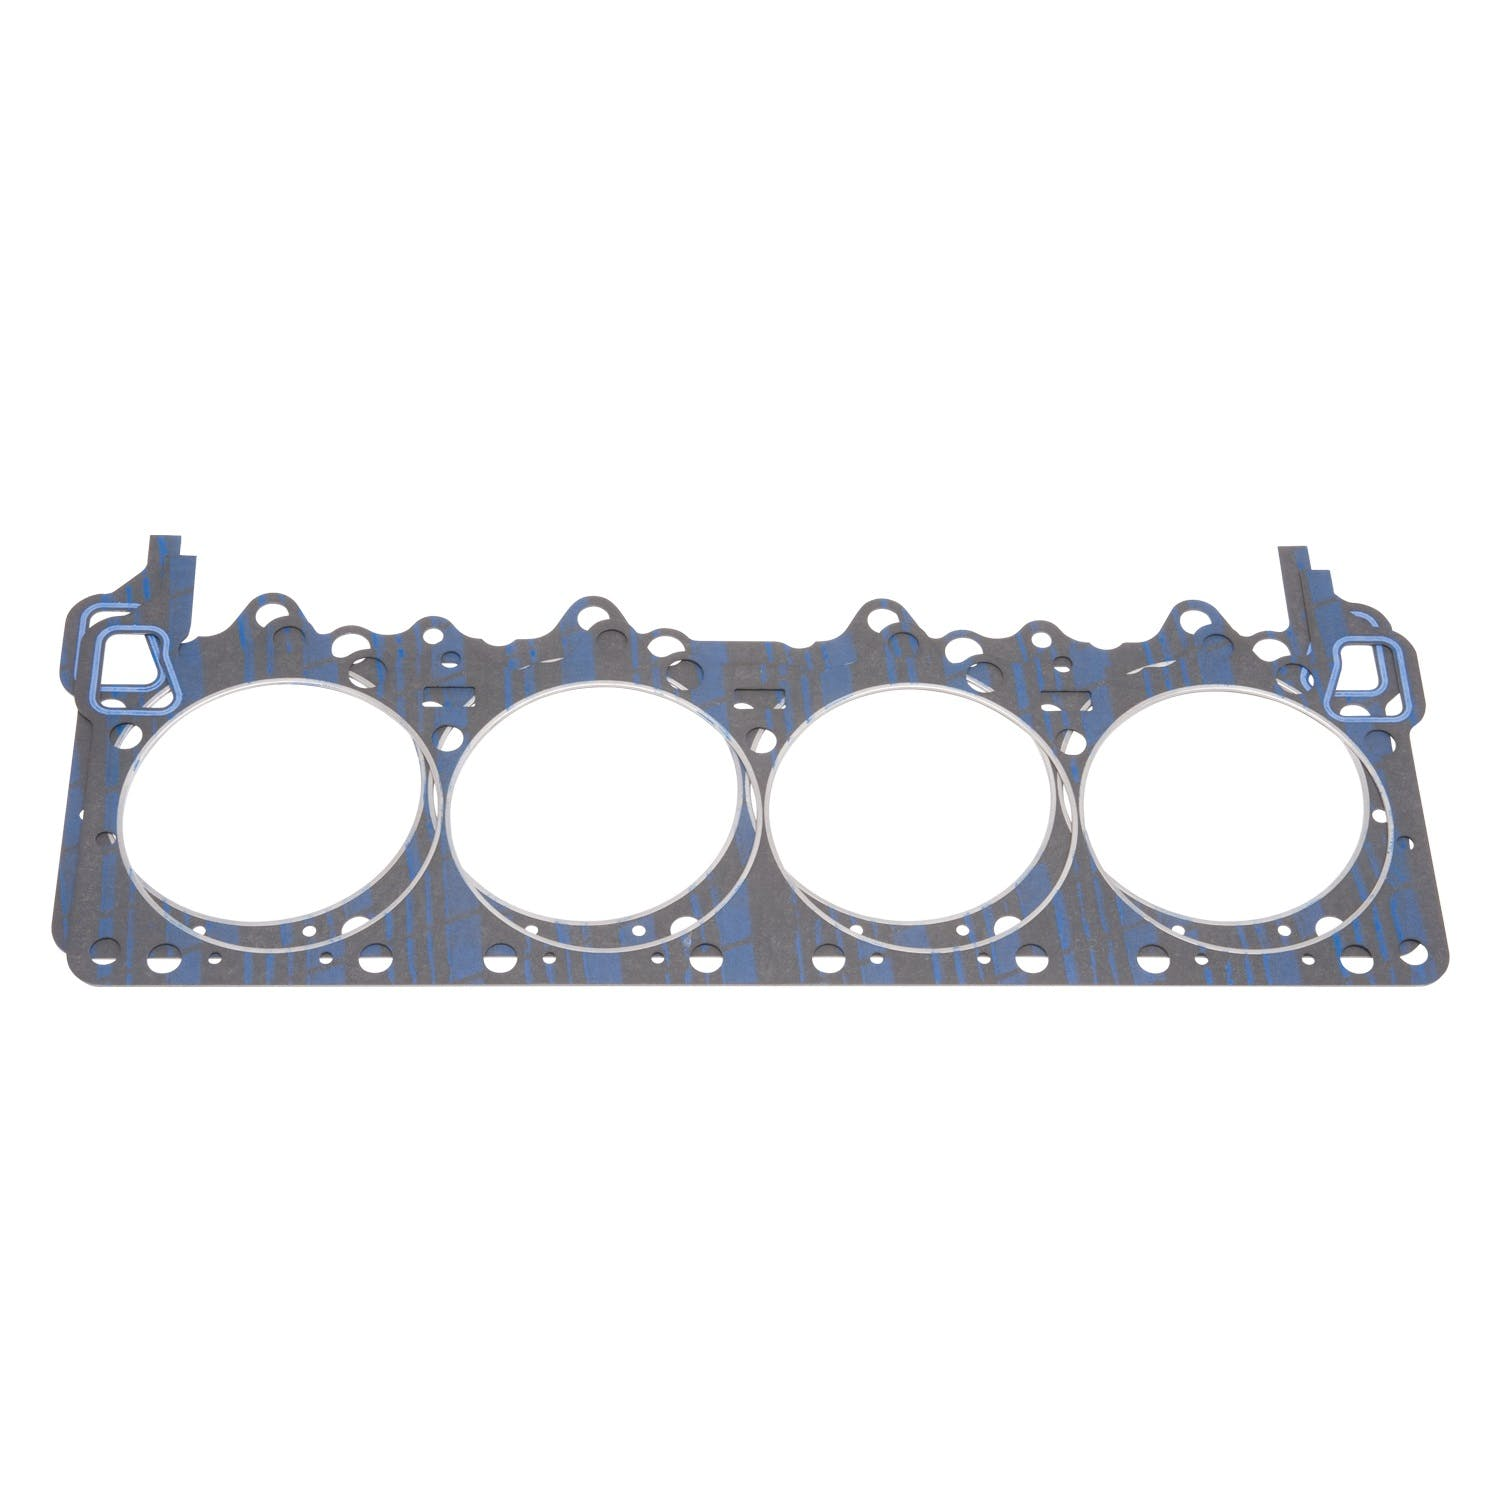 Edelbrock 7361 Head Gaskets Set For 1958-86 S//B Chevy 302-350